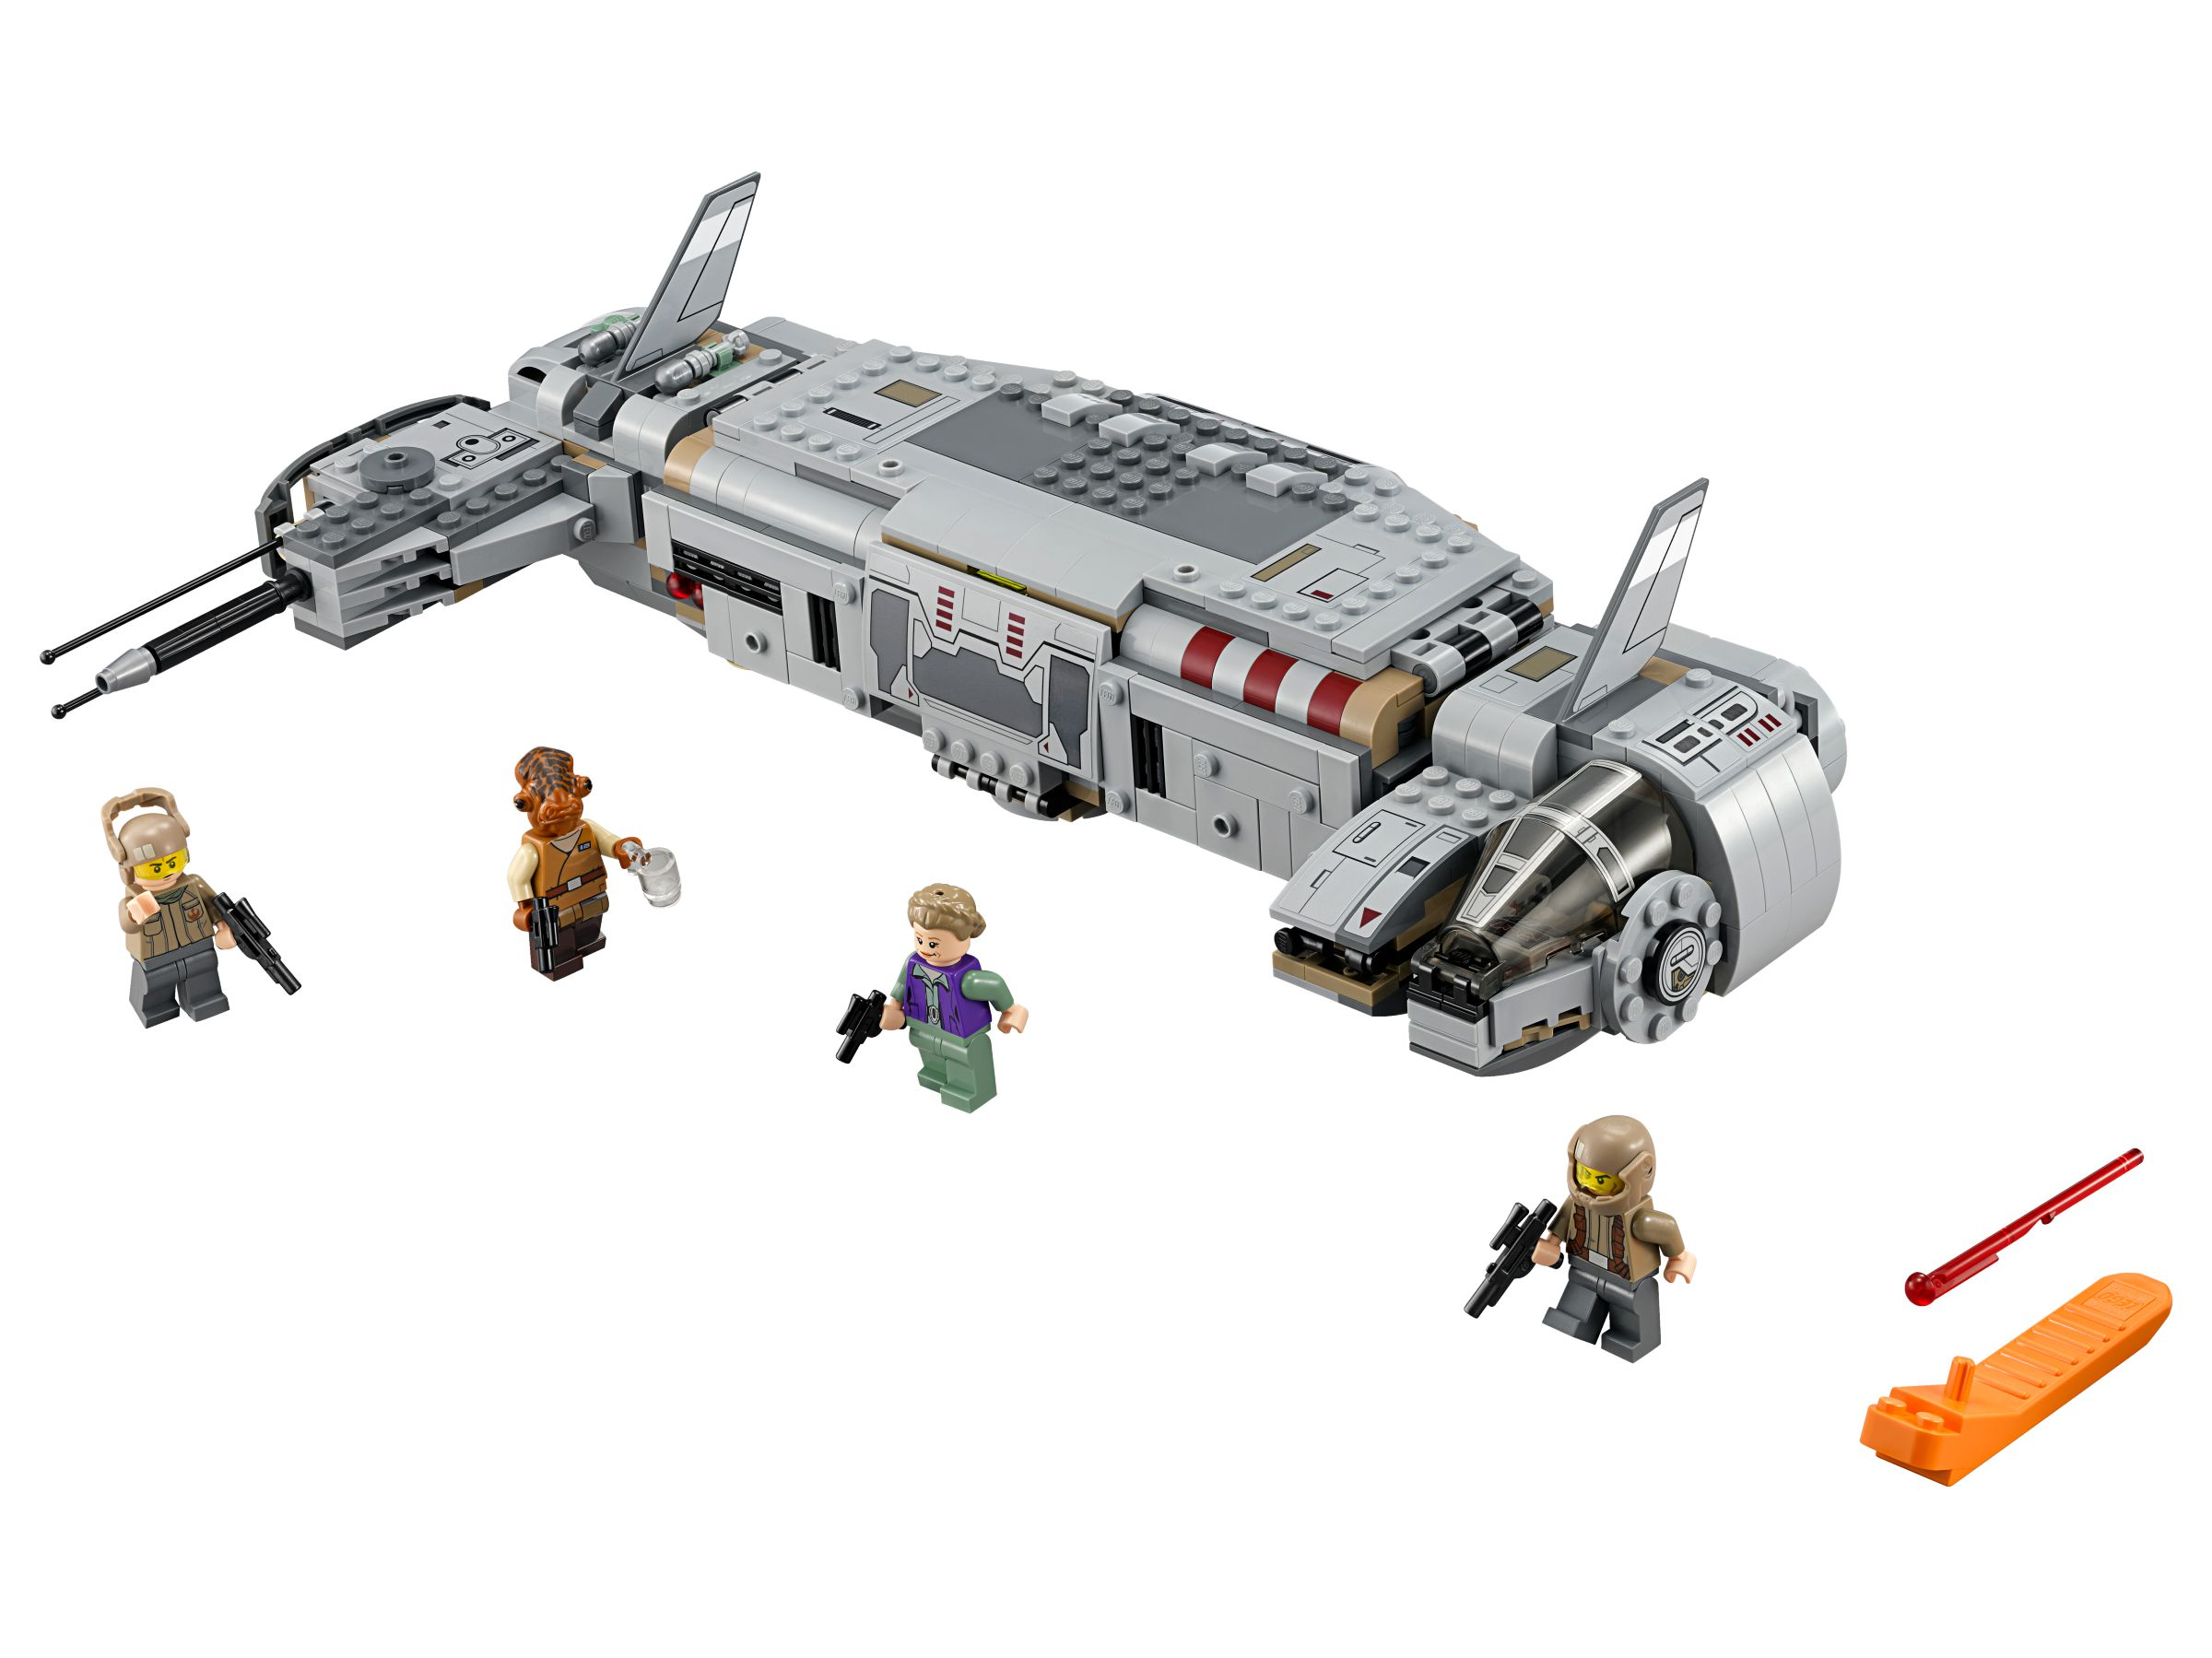 LEGO Star Wars 75140 Resistance Troop Transporter